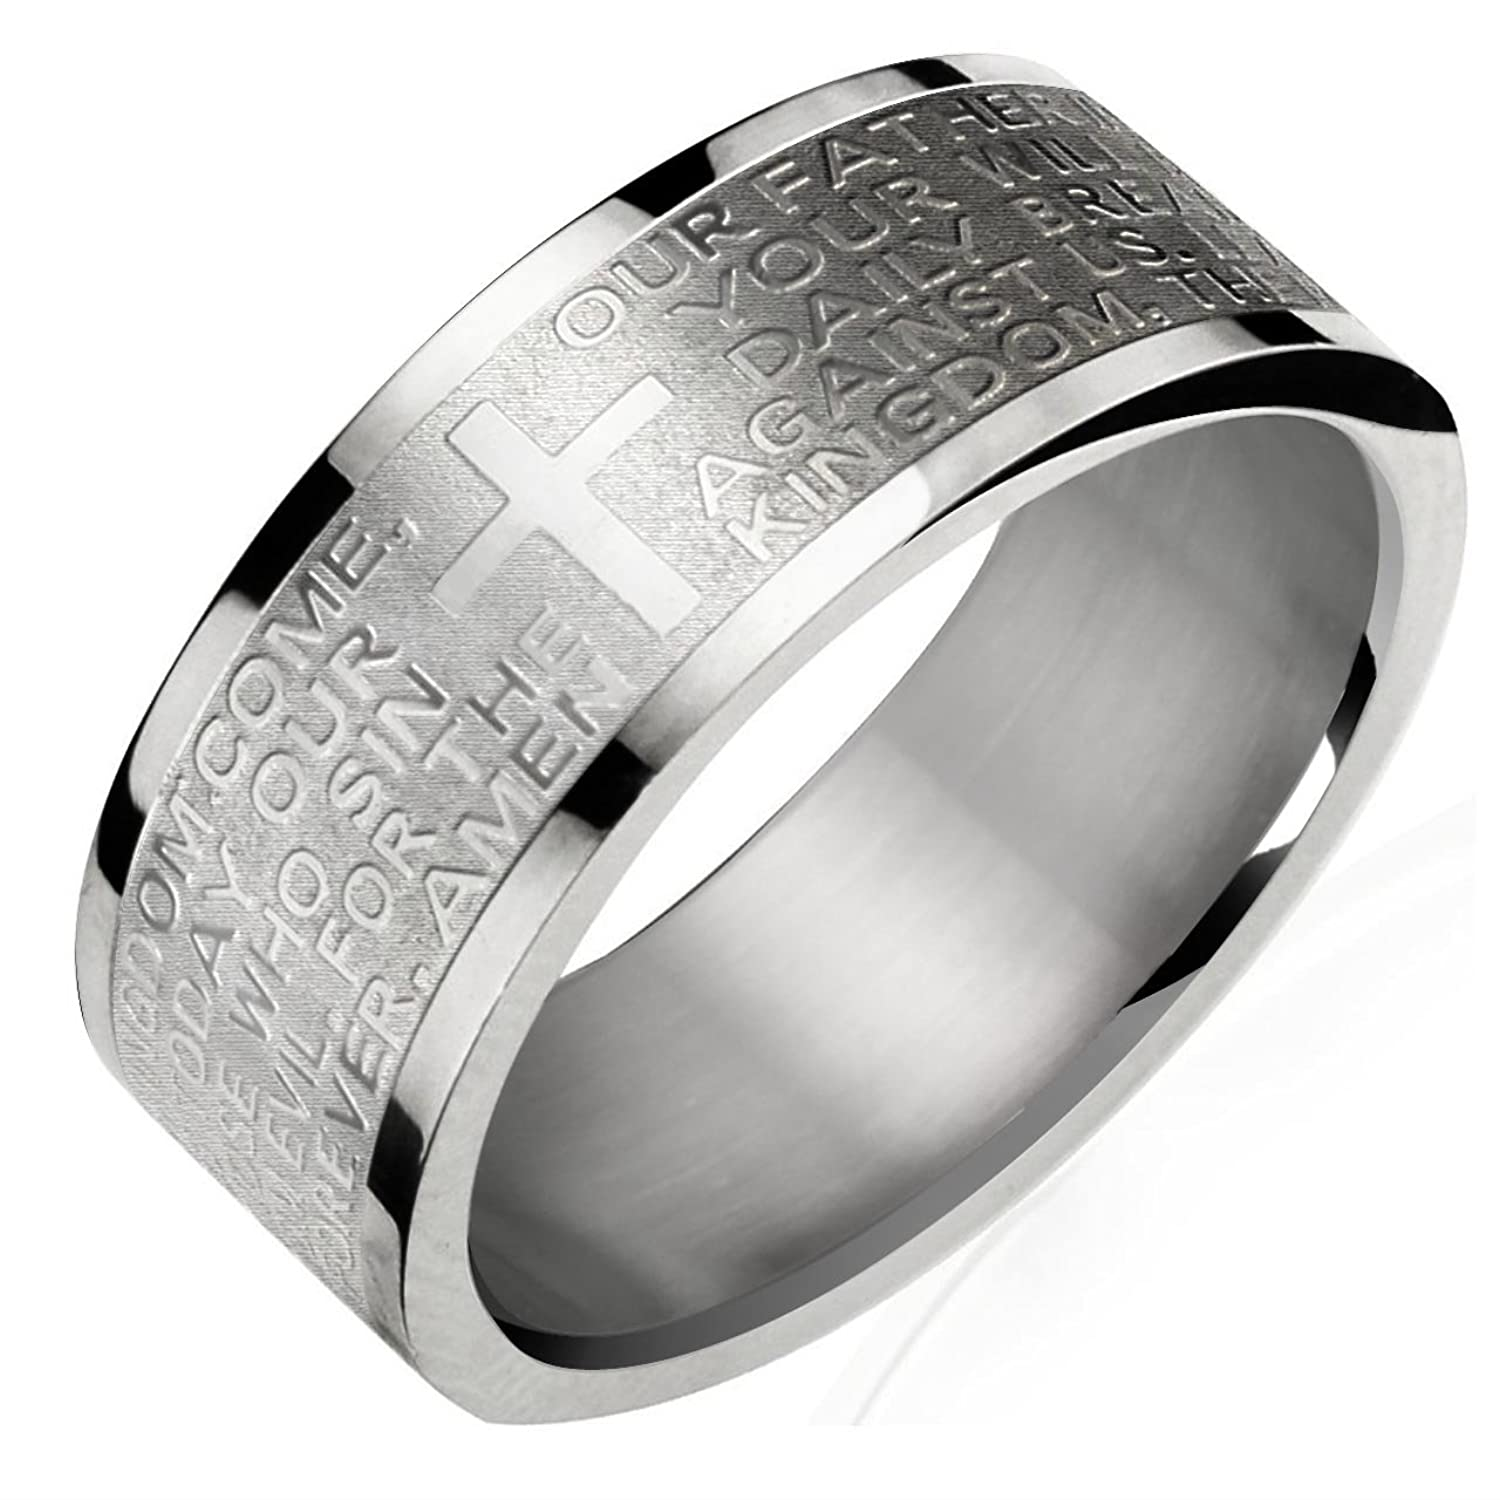 rj mens spartan ring jewellery